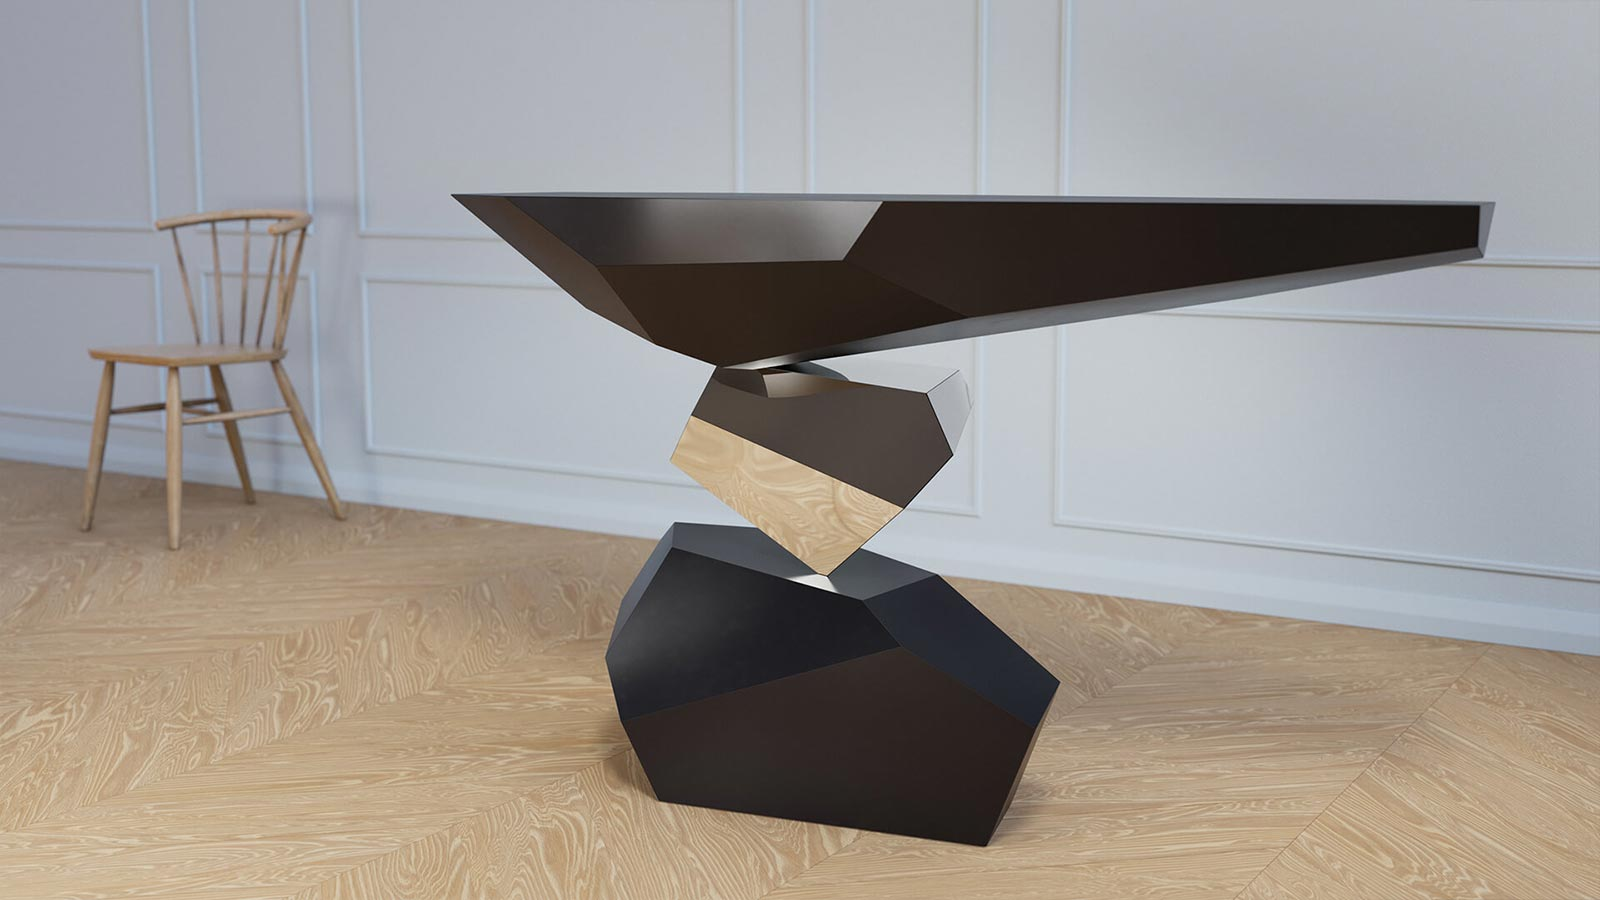 Serenity console table by Duffy London